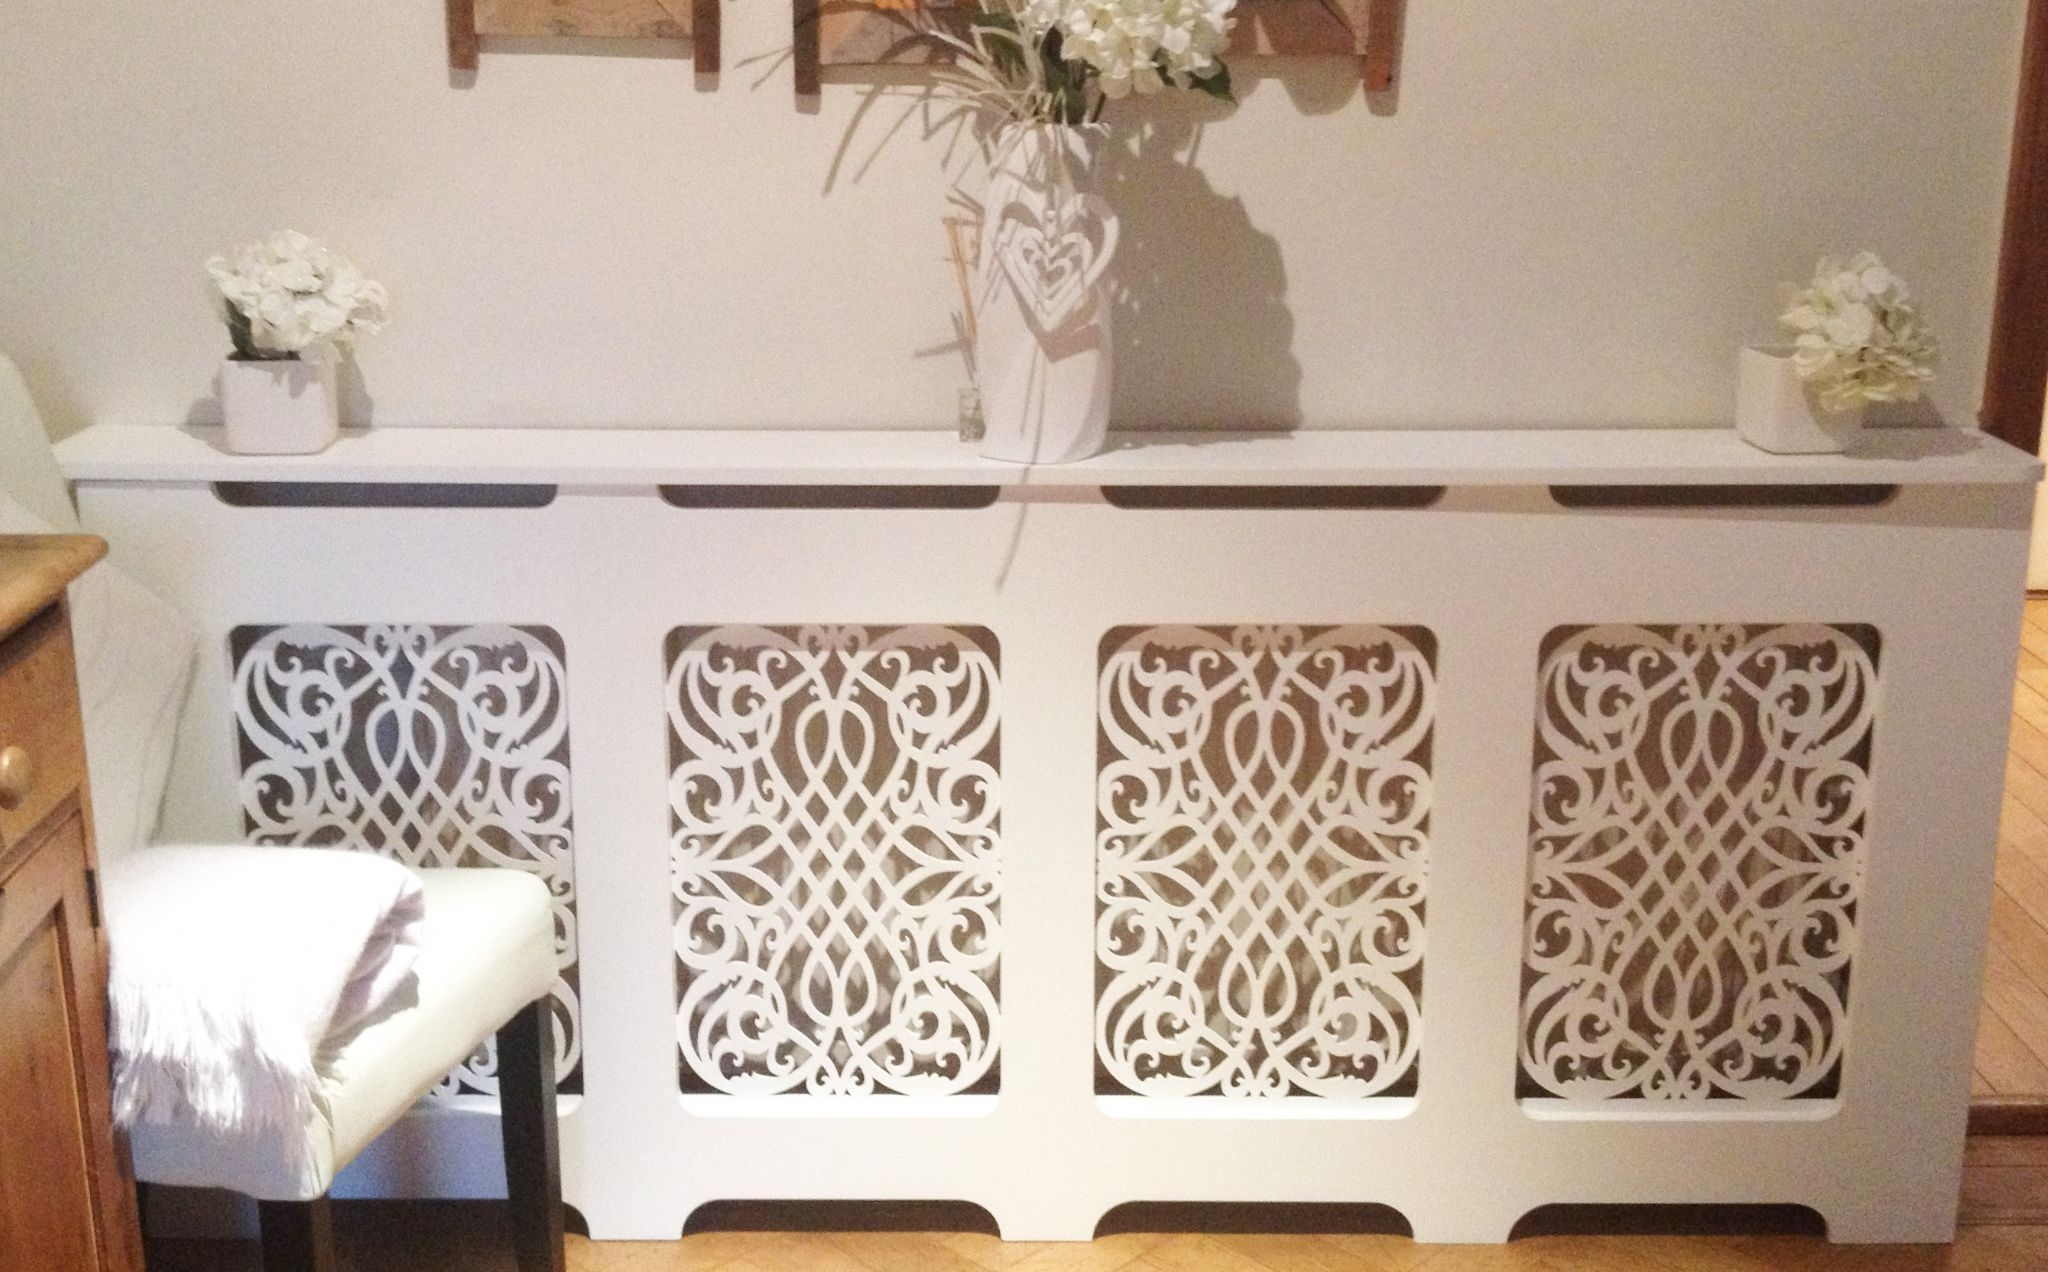 Radiator Cover Shelf Unit In Well Known Classic Style Radiator Cover (View 8 of 15)